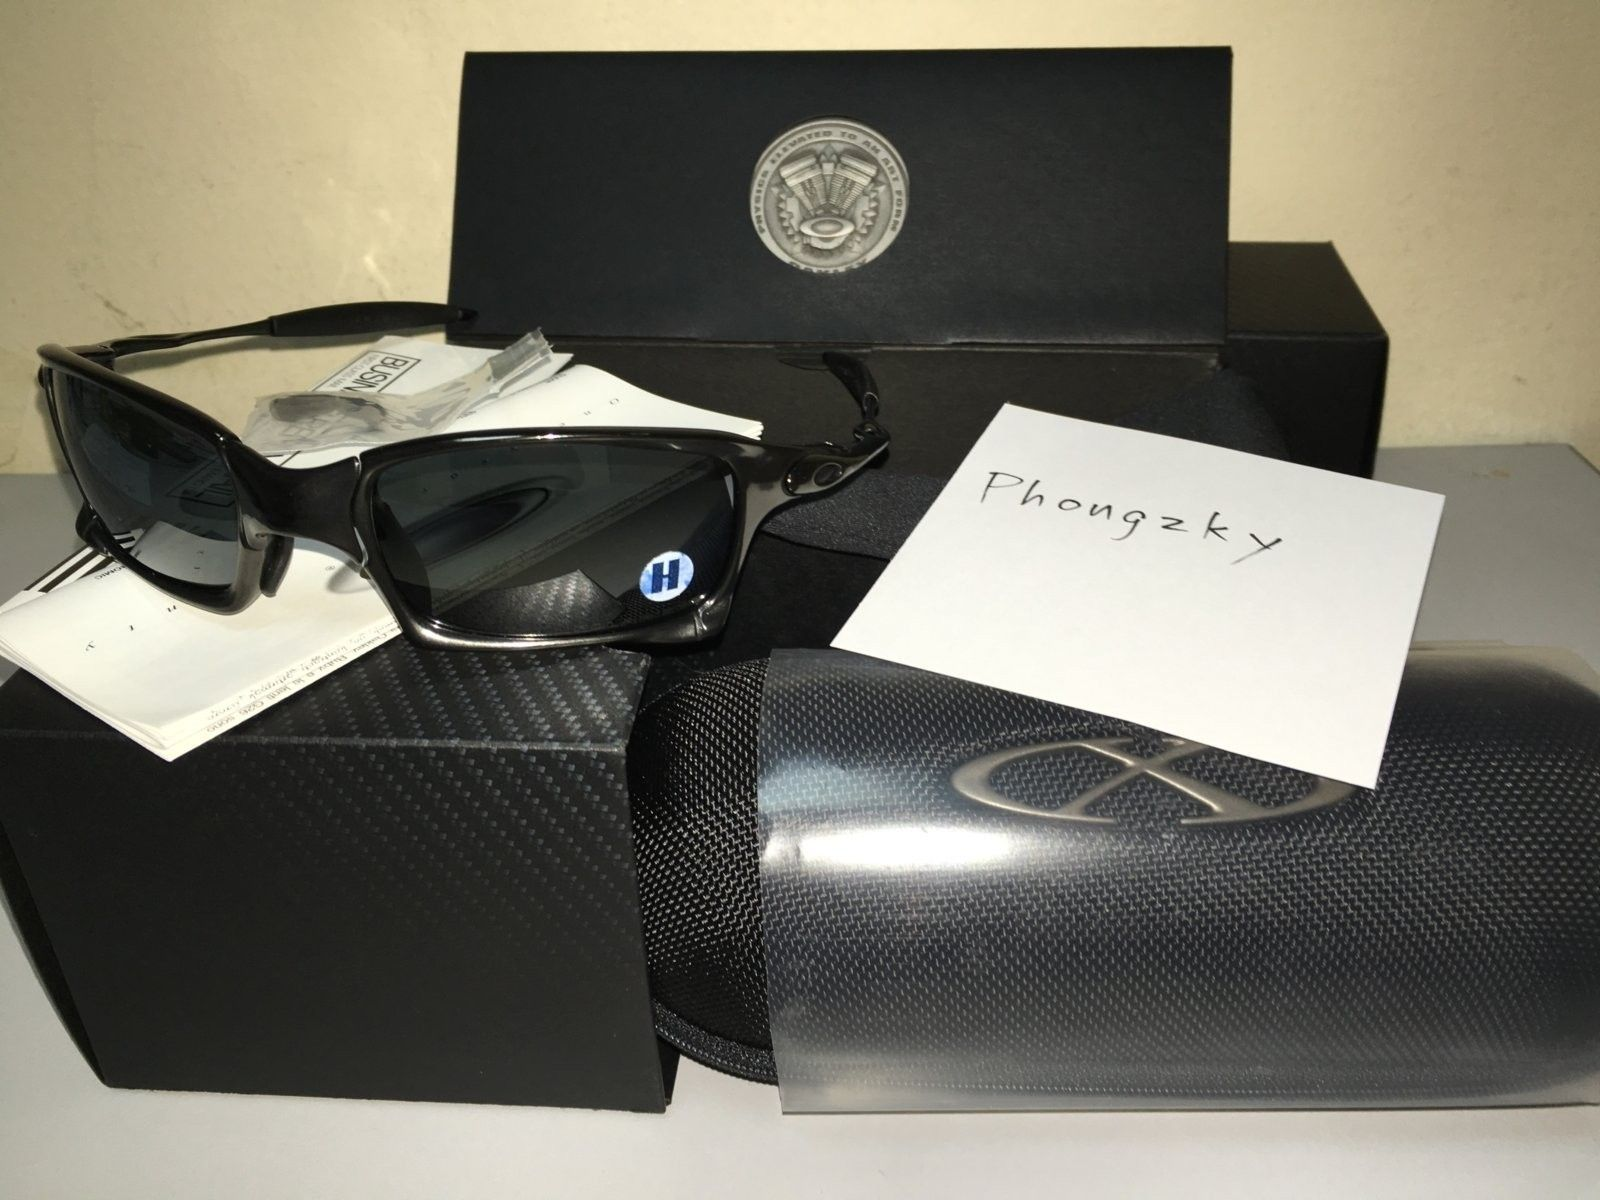 BNIB XS Polished Carbon w/ BIP  dropped USD 530 all in - image.jpeg